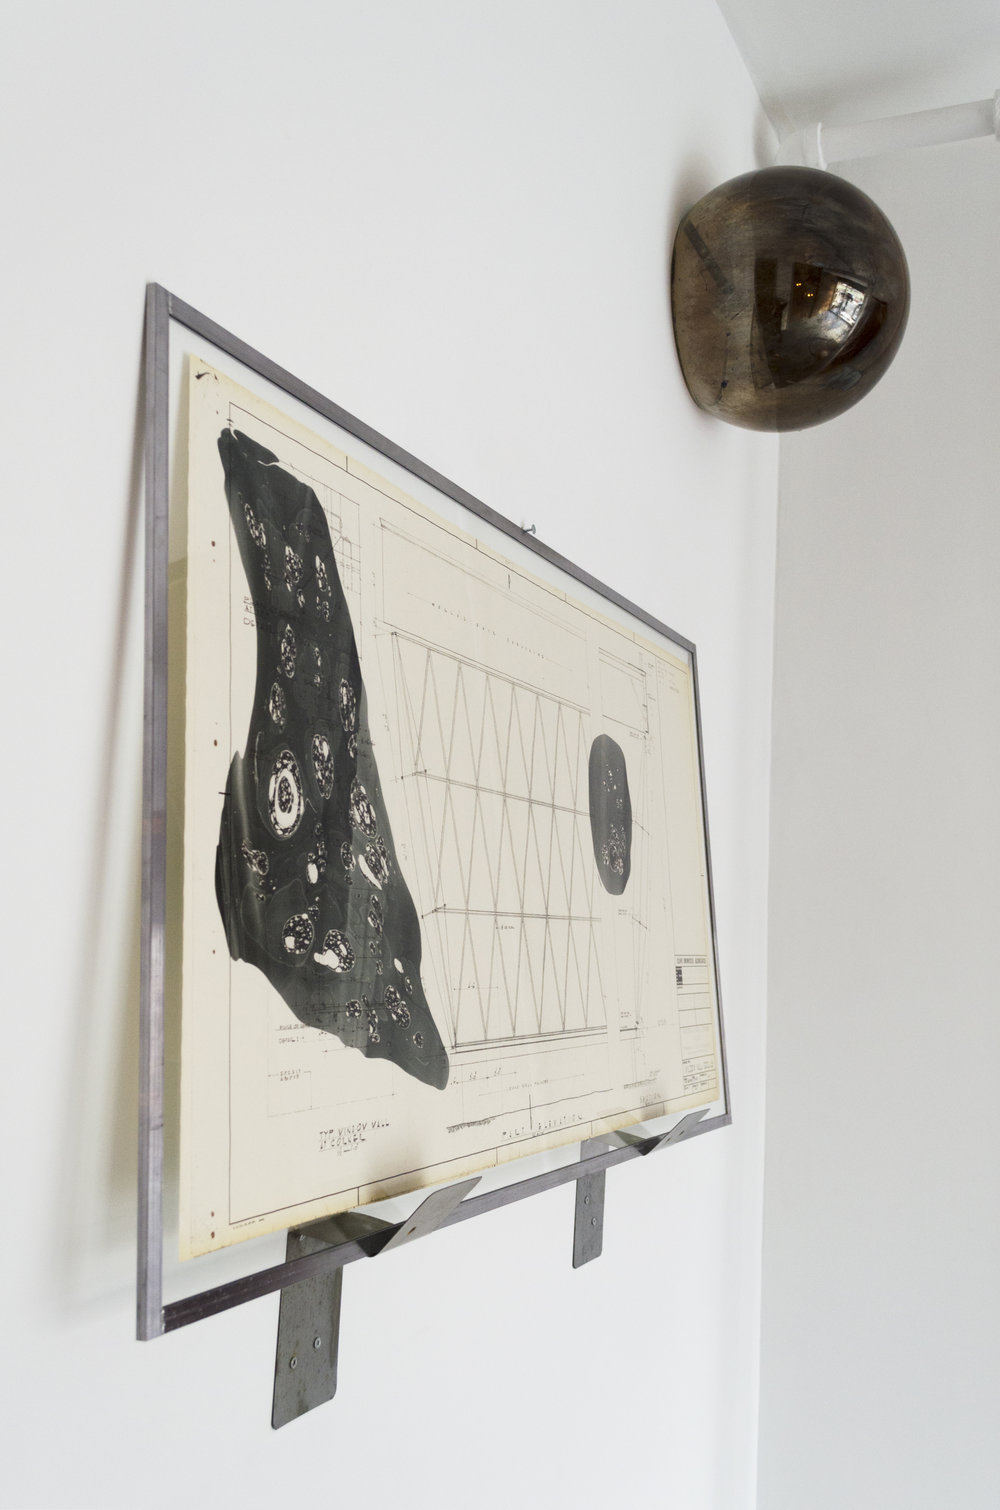 Sarah Entwistle,  Harvest Moon 1963 #3 , 2018  and The well hidden central nothingness,  2019, Exhibition View